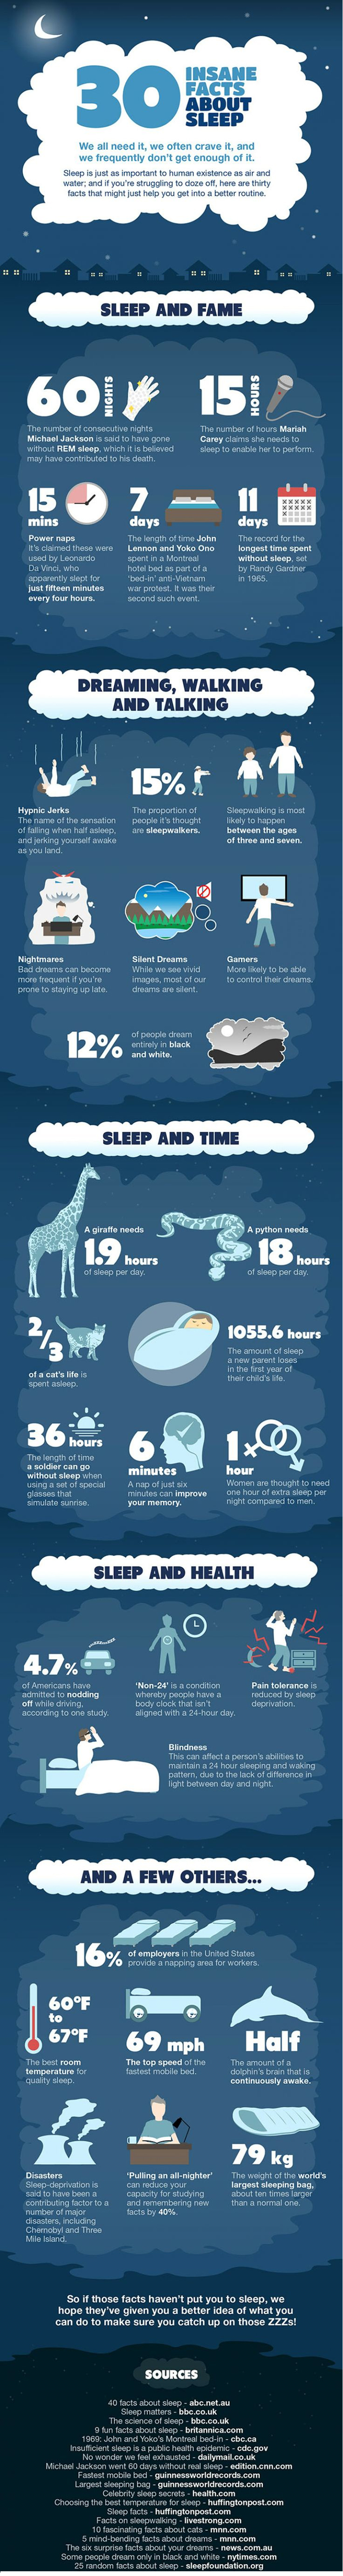 Insane facts about sleep